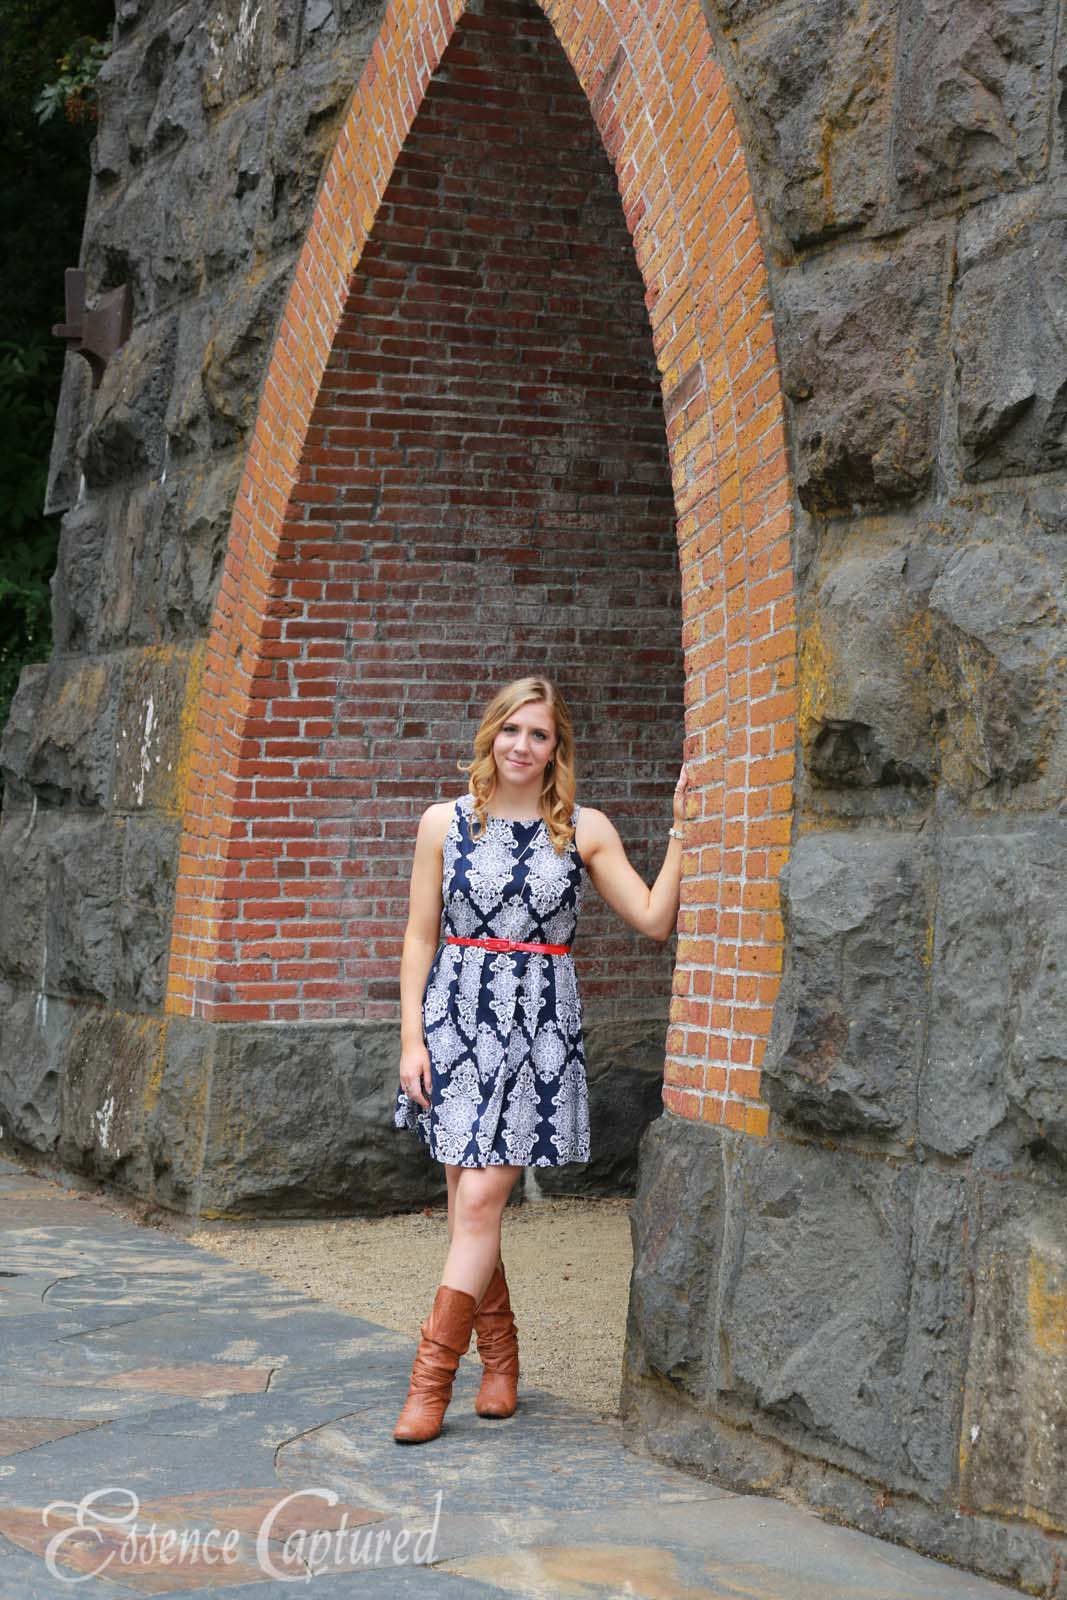 female high school senior portrait blue print dress long blonde hair standing in archway stone building